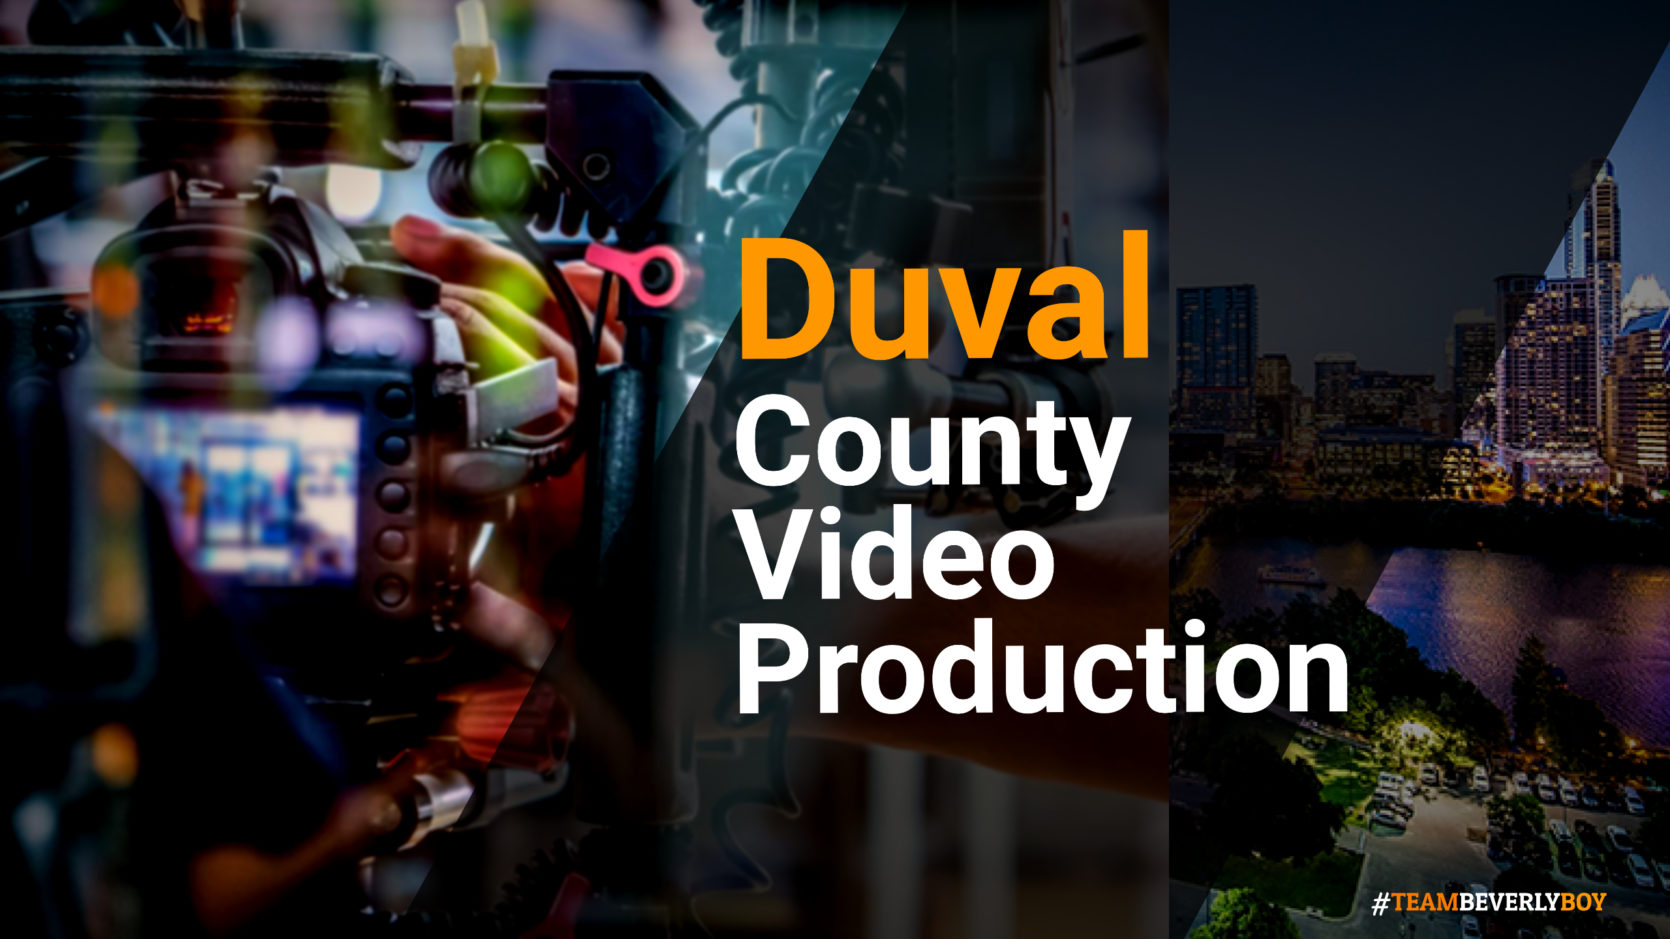 Duval county video production